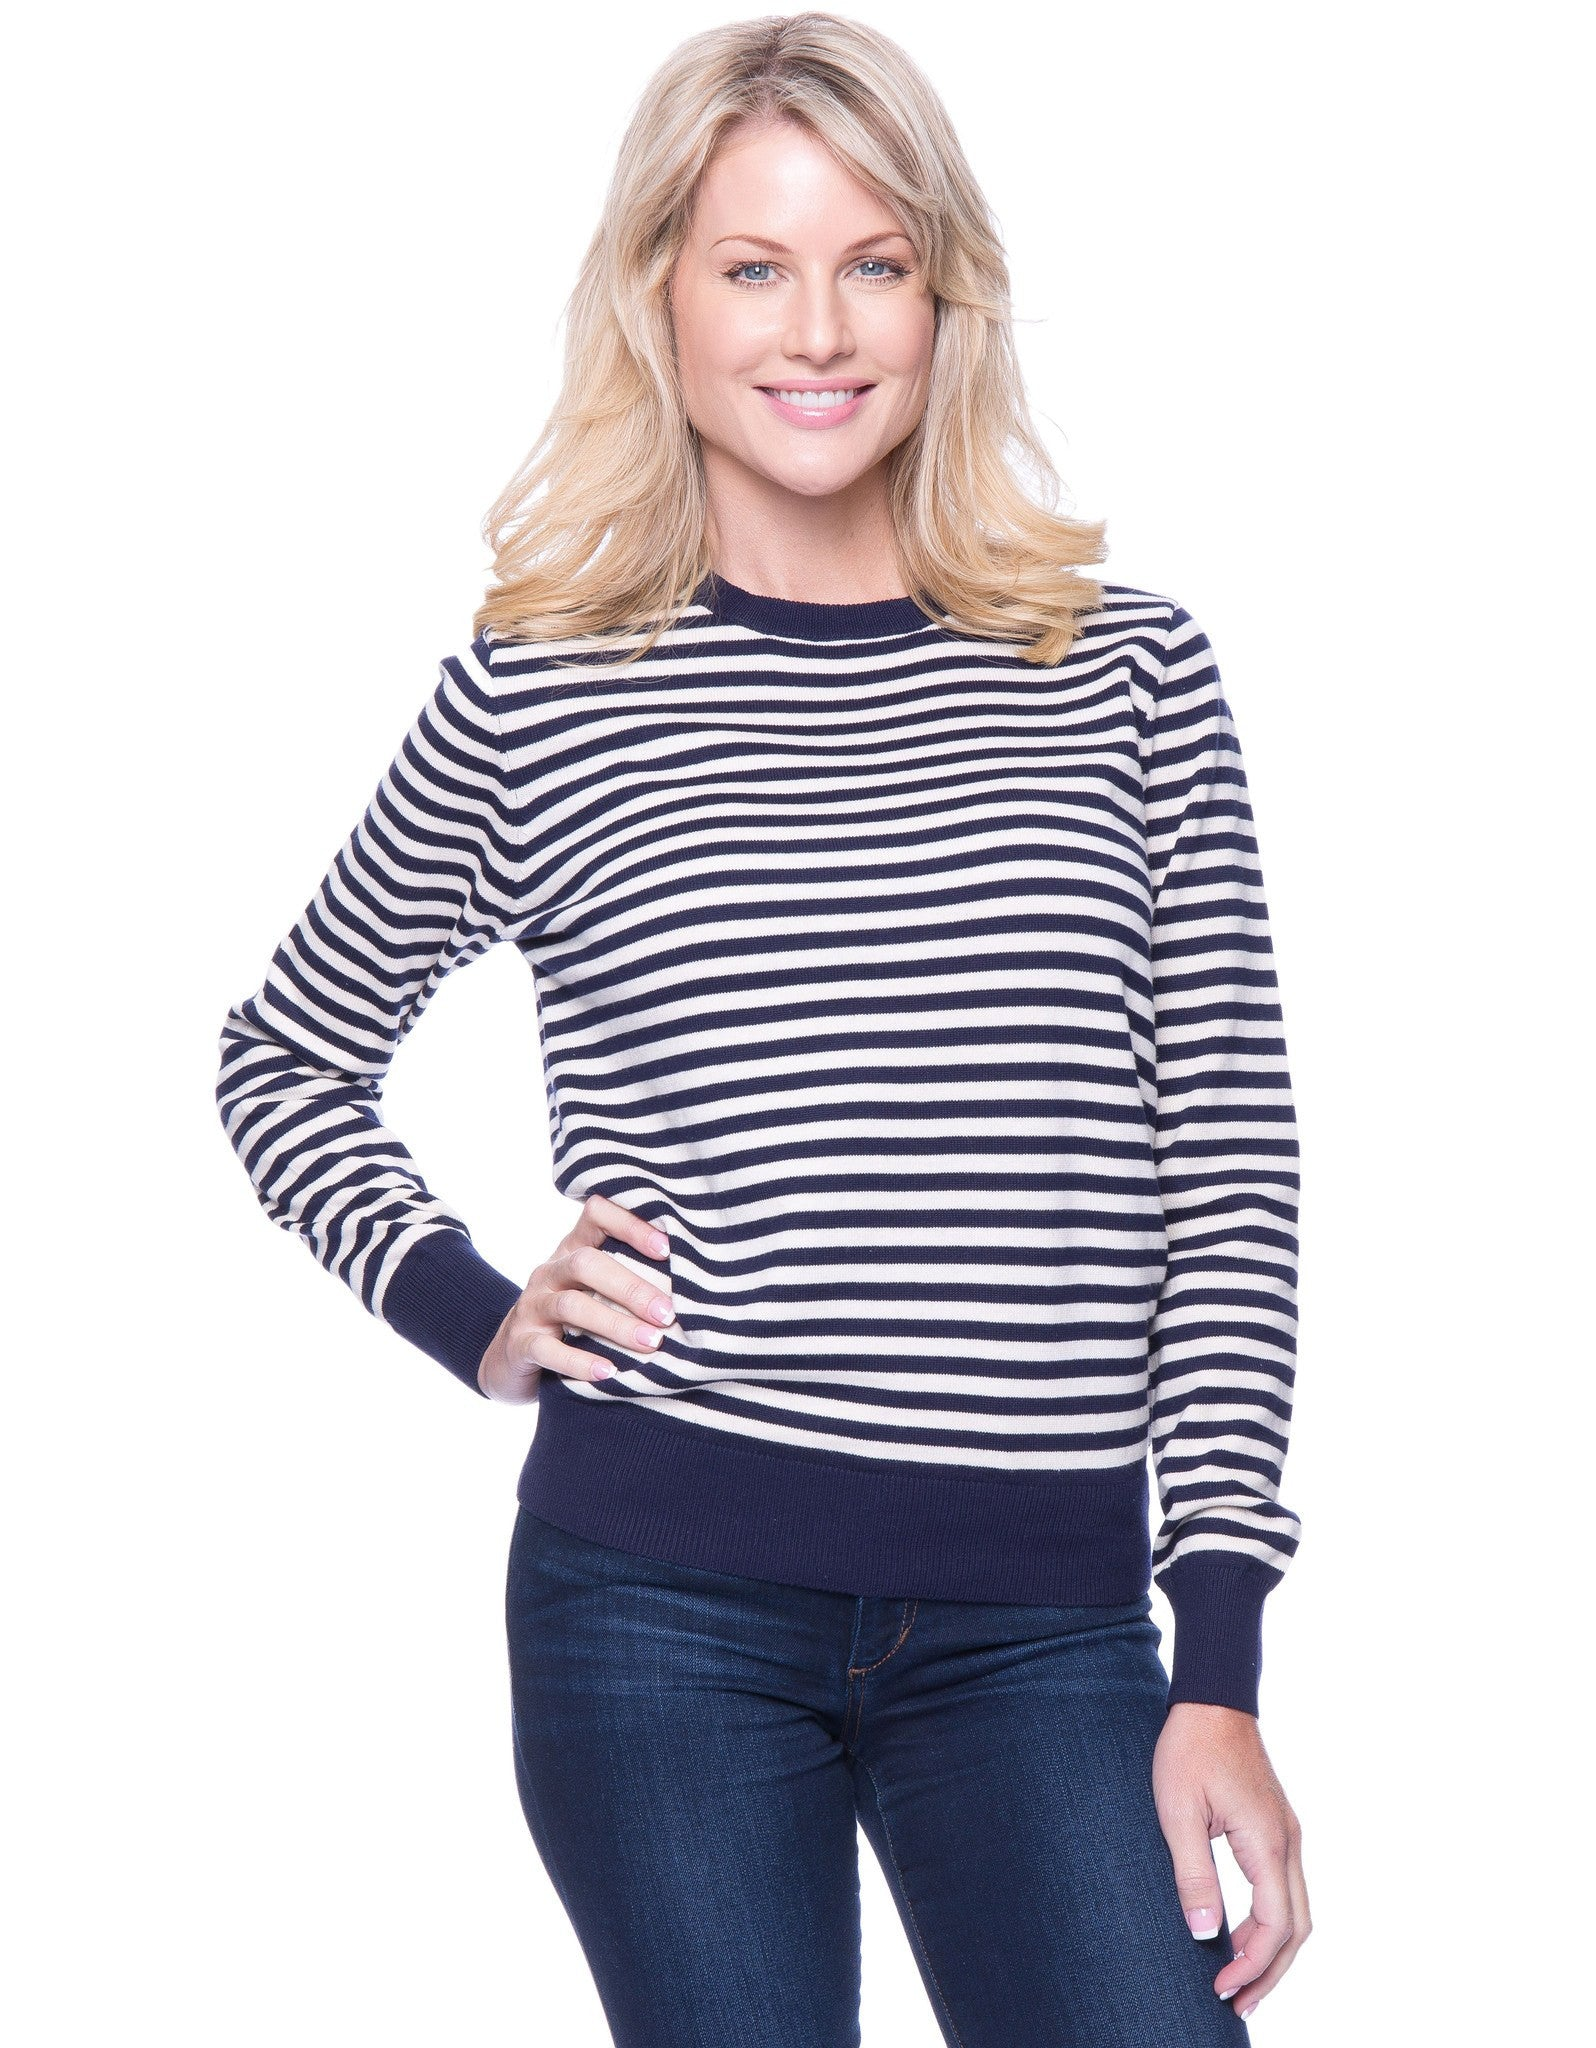 Premium Cotton Crew Neck Sweater - Stripes Navy/Ivory